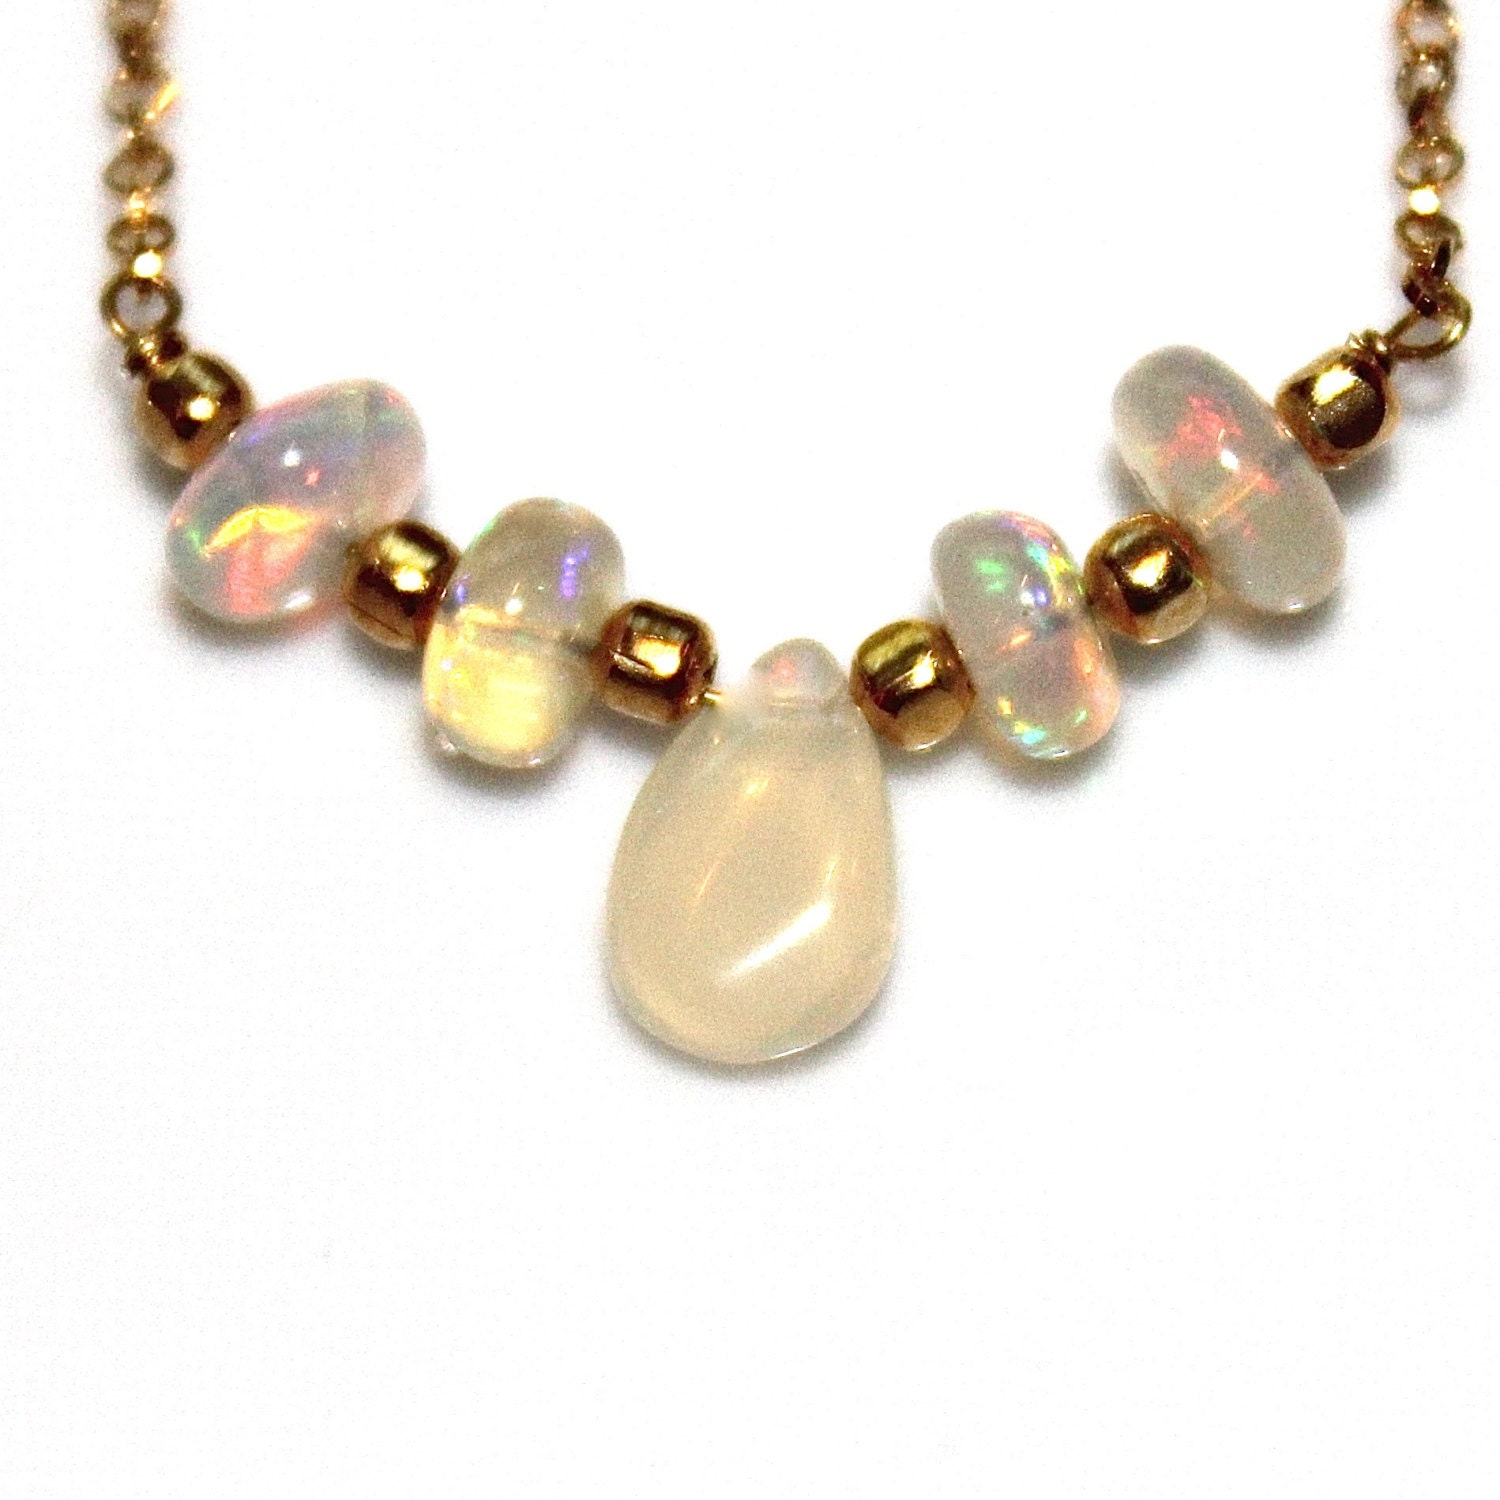 big opal necklace ethiopian opal necklace opal jewelry simple